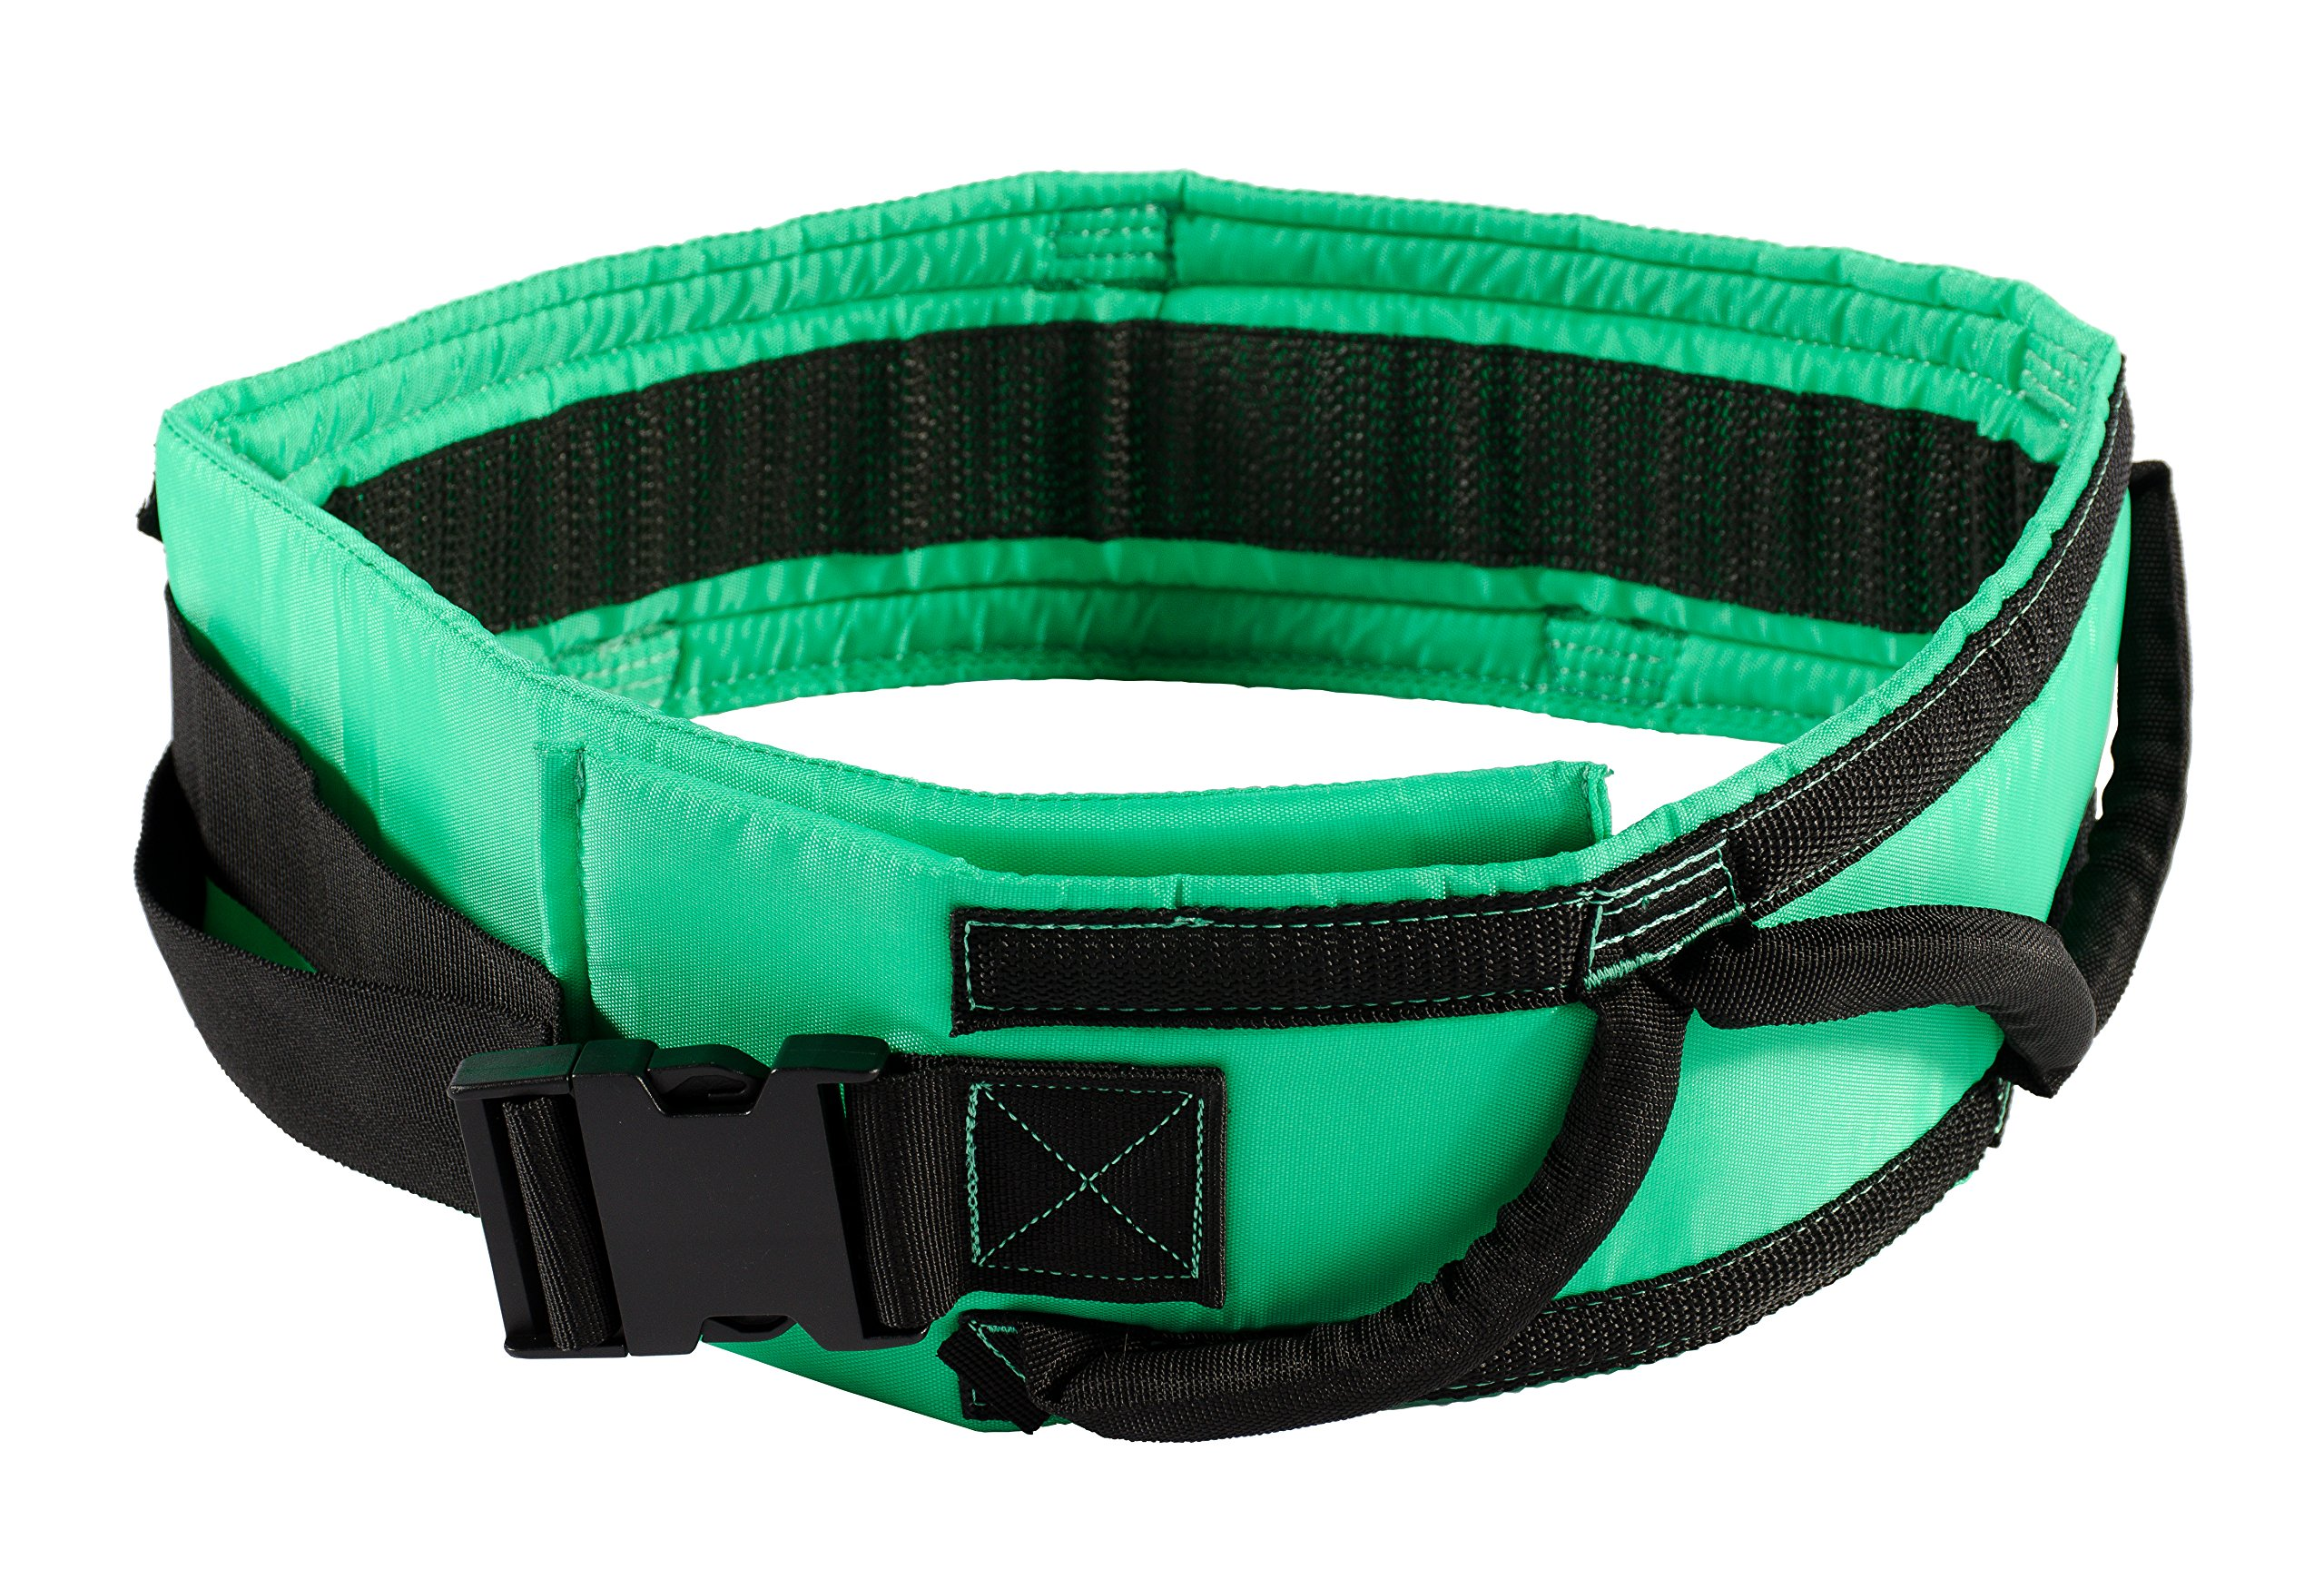 Patient Transfer Handling Belt, Padded Walking Gait Belt with Quick Release Buckle, Physical Therapy, Size Large